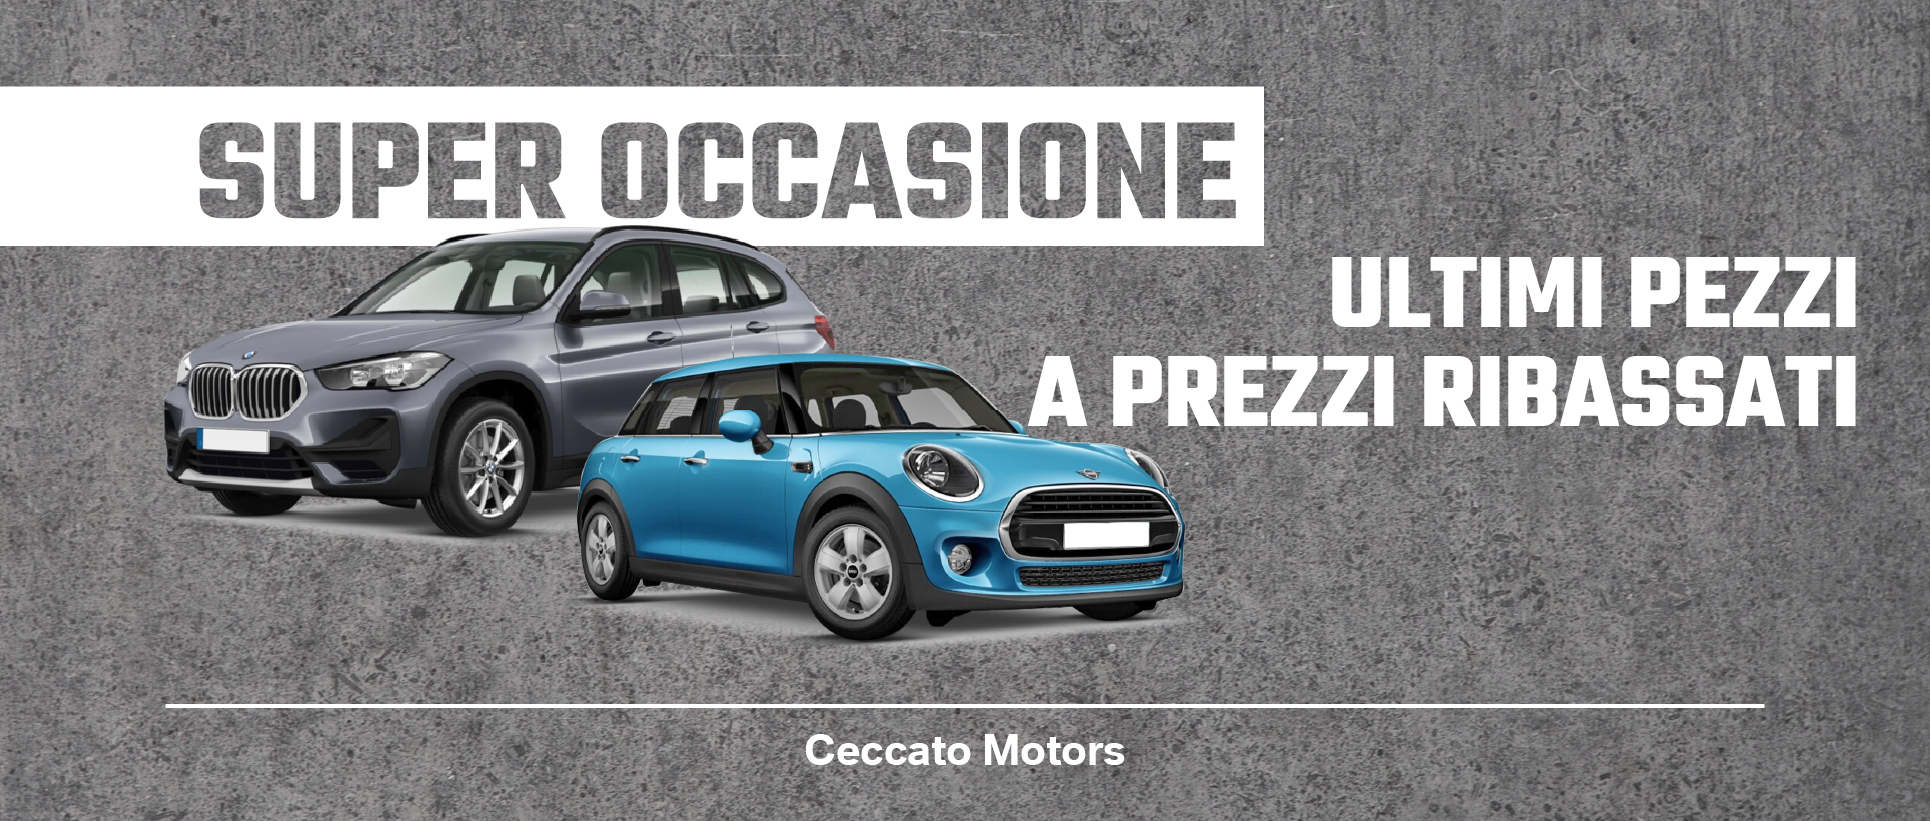 Ceccato Motors Super Occasioni